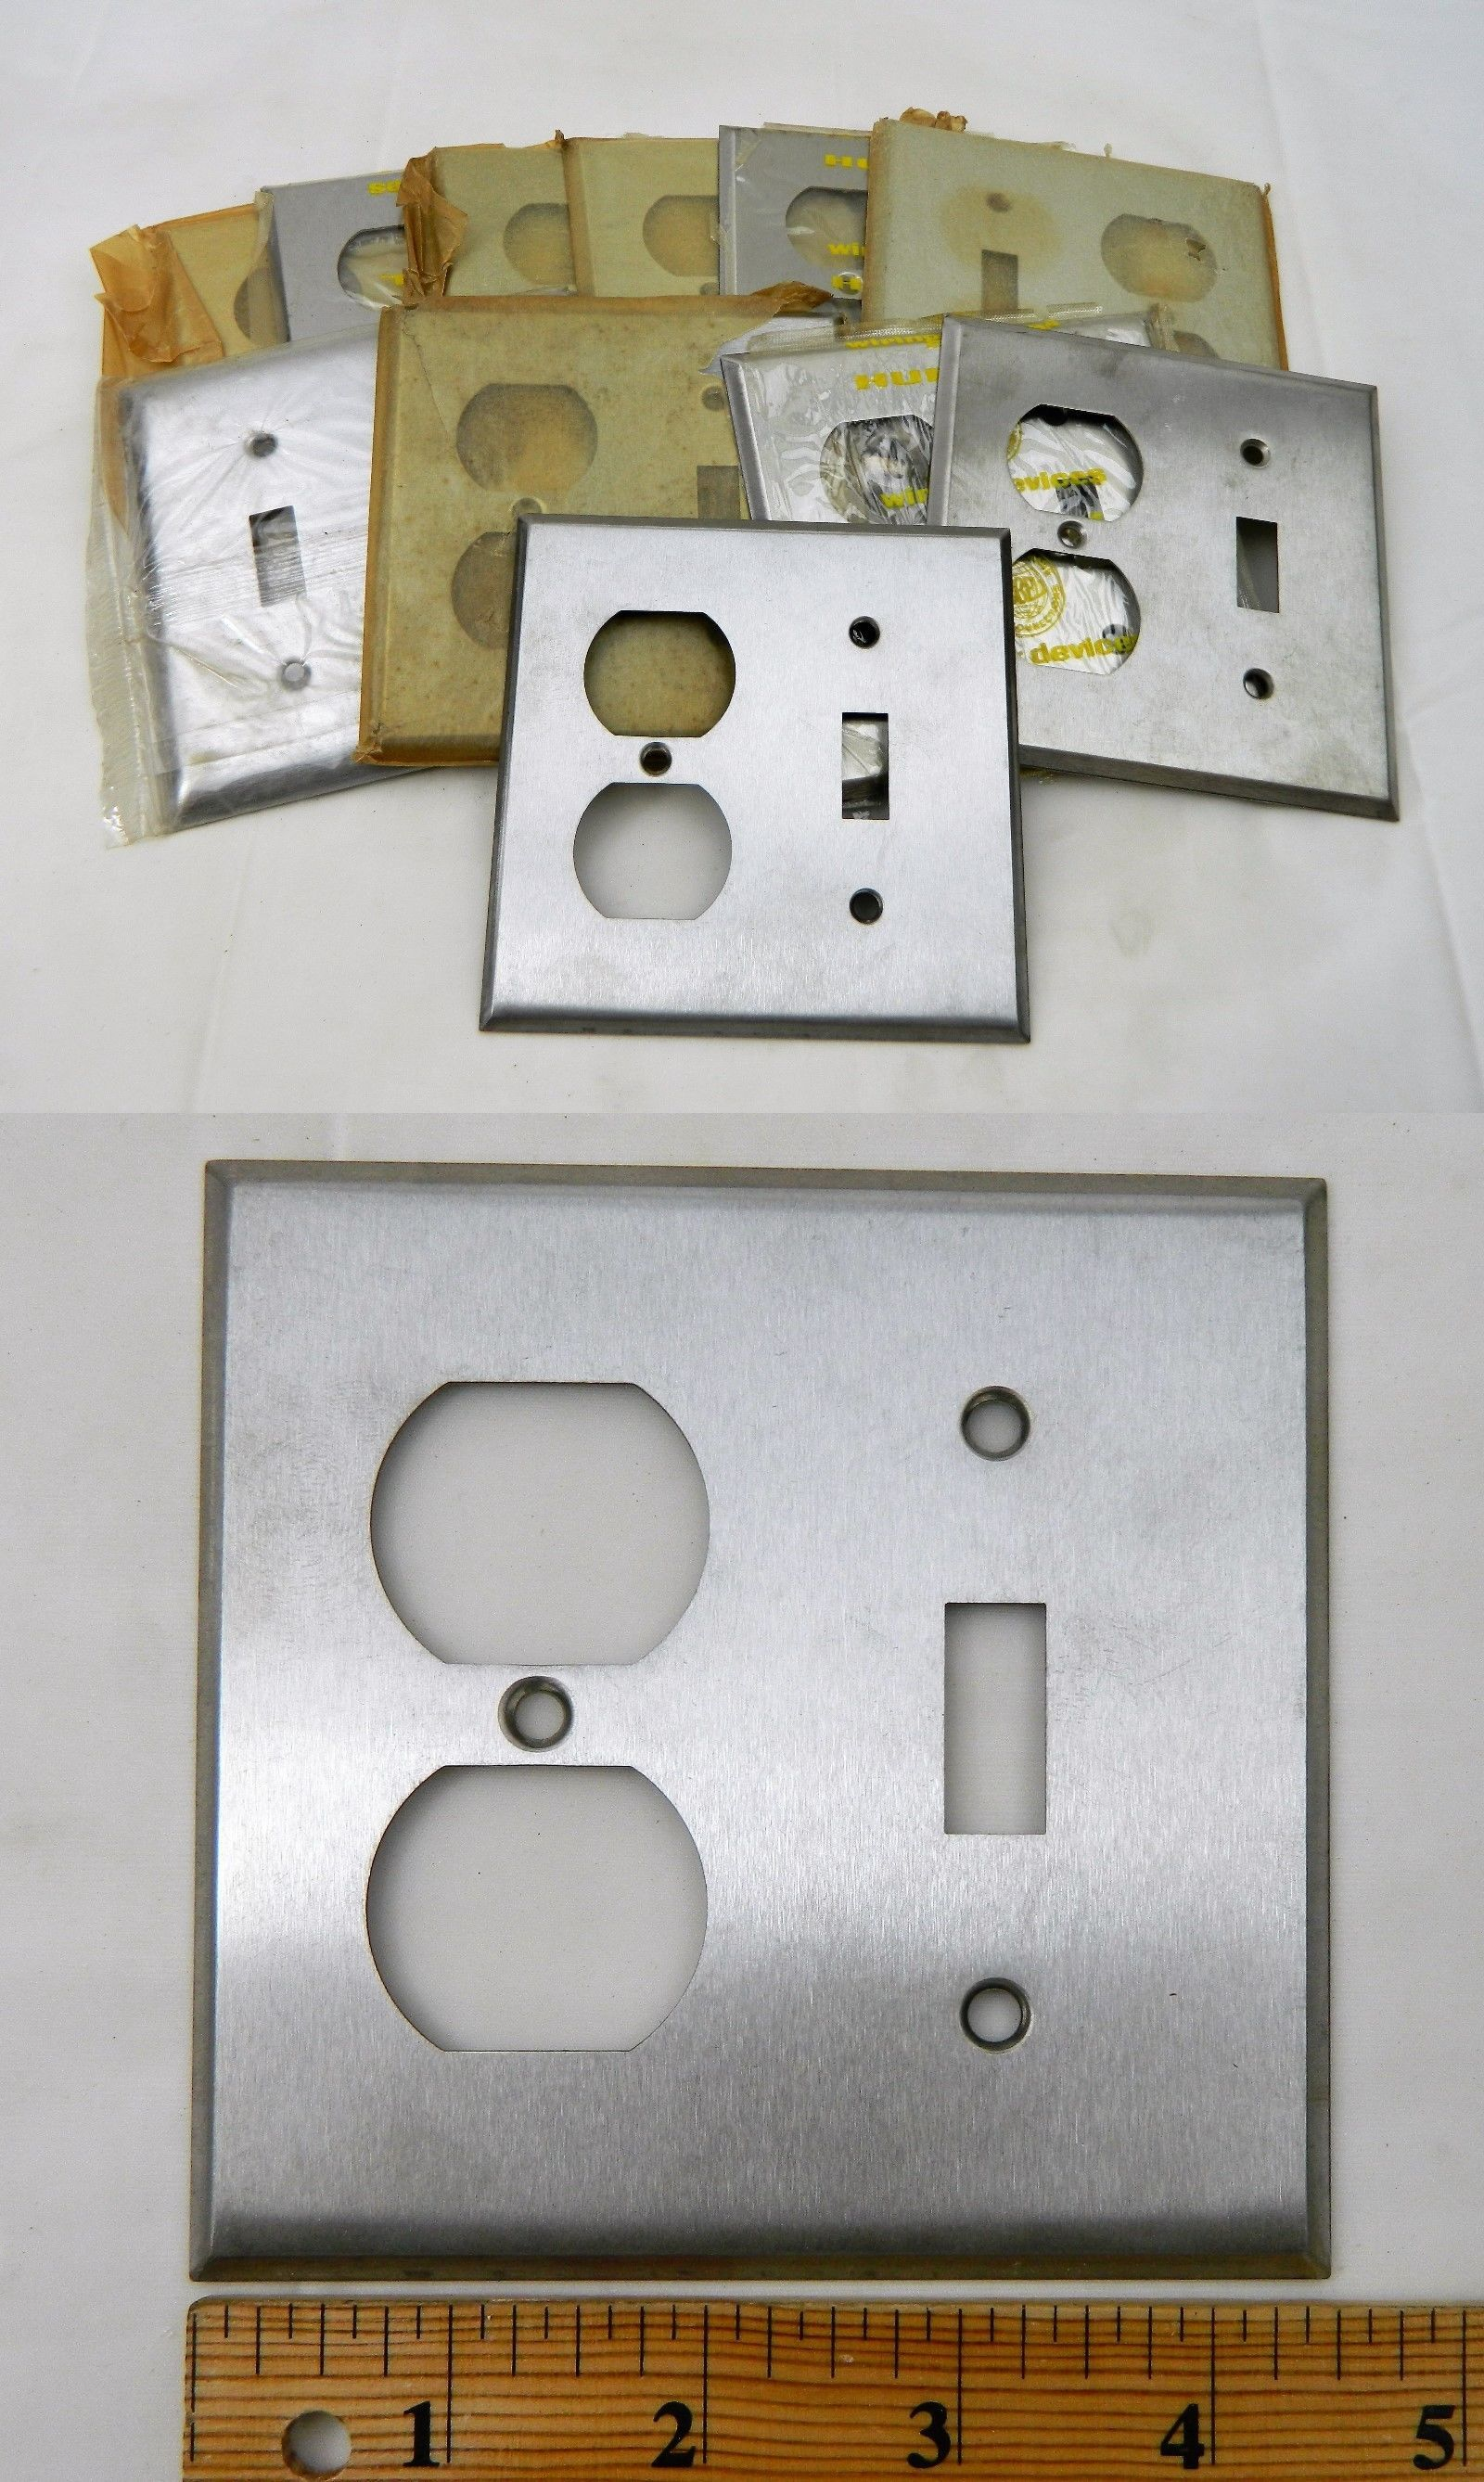 Where To Buy Switch Plate Covers Switch Plates And Outlet Covers 43412 10 Metal Stainless Steel 2